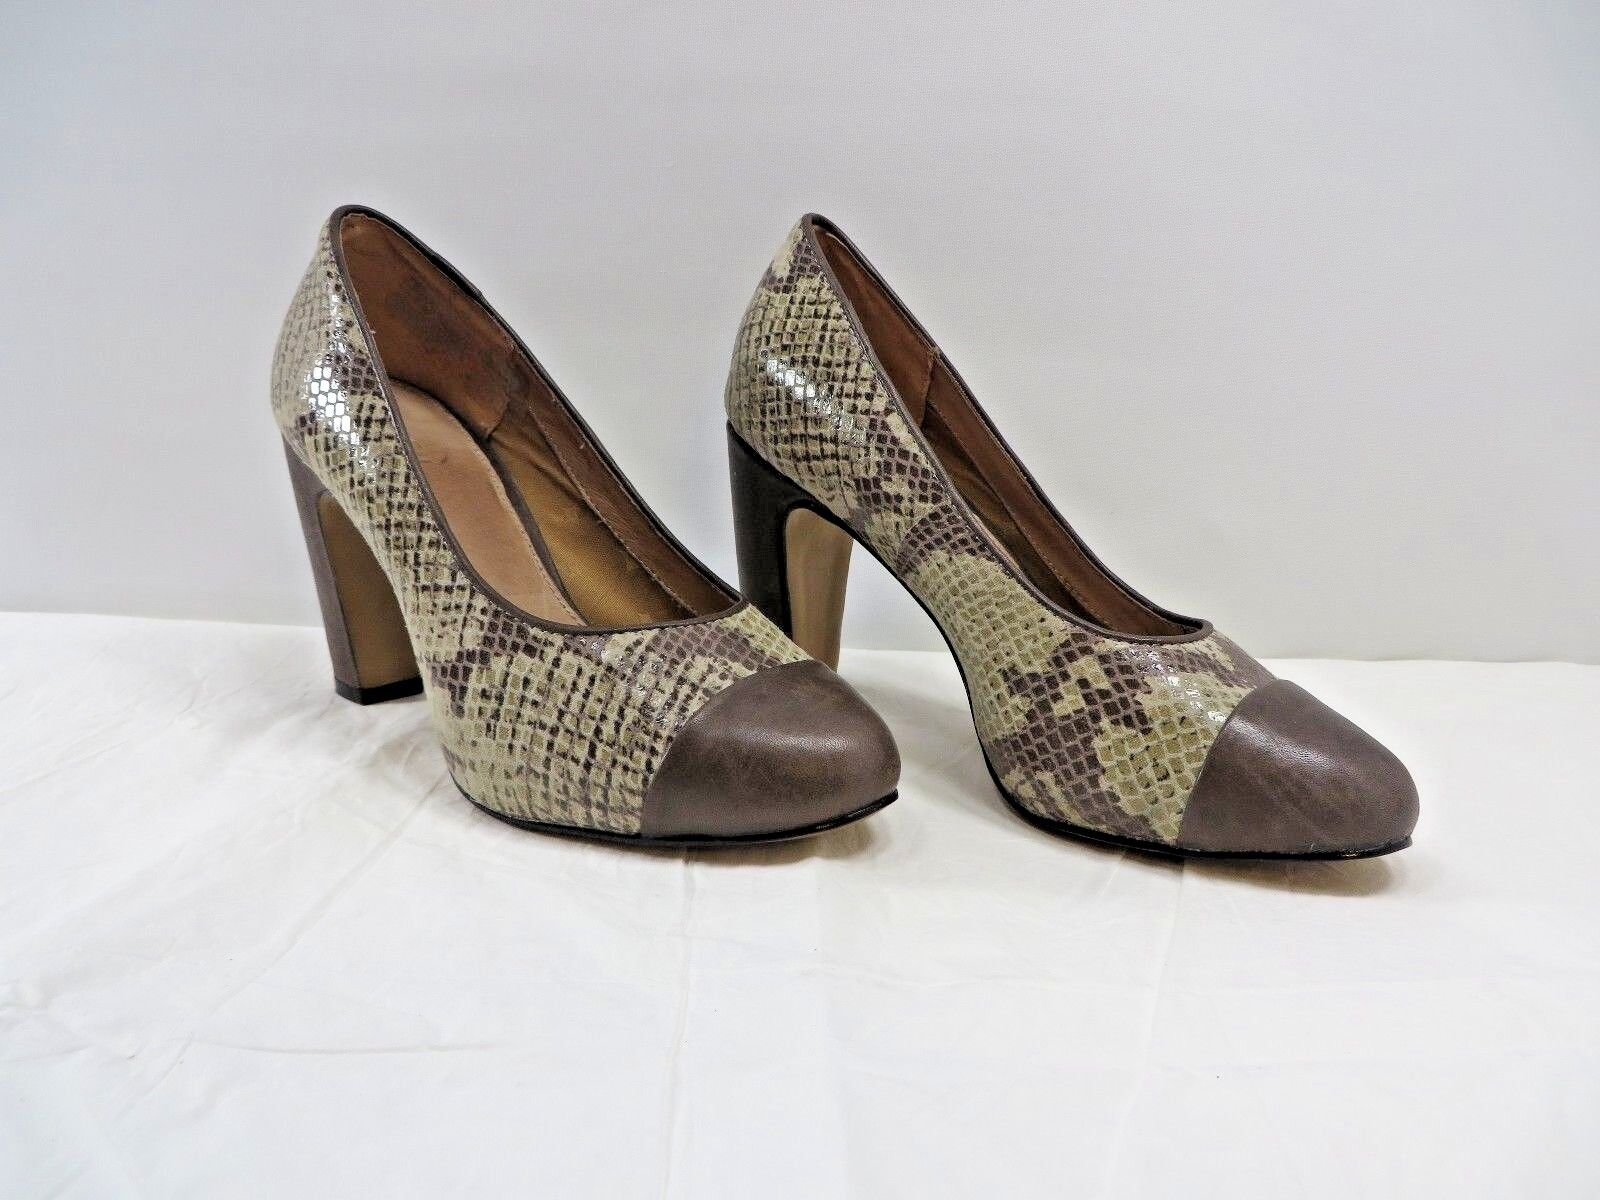 Fossil Woman's Monica High Heel Cap Toe shoes Brown Snake Embossed Sz 5.5 NWD